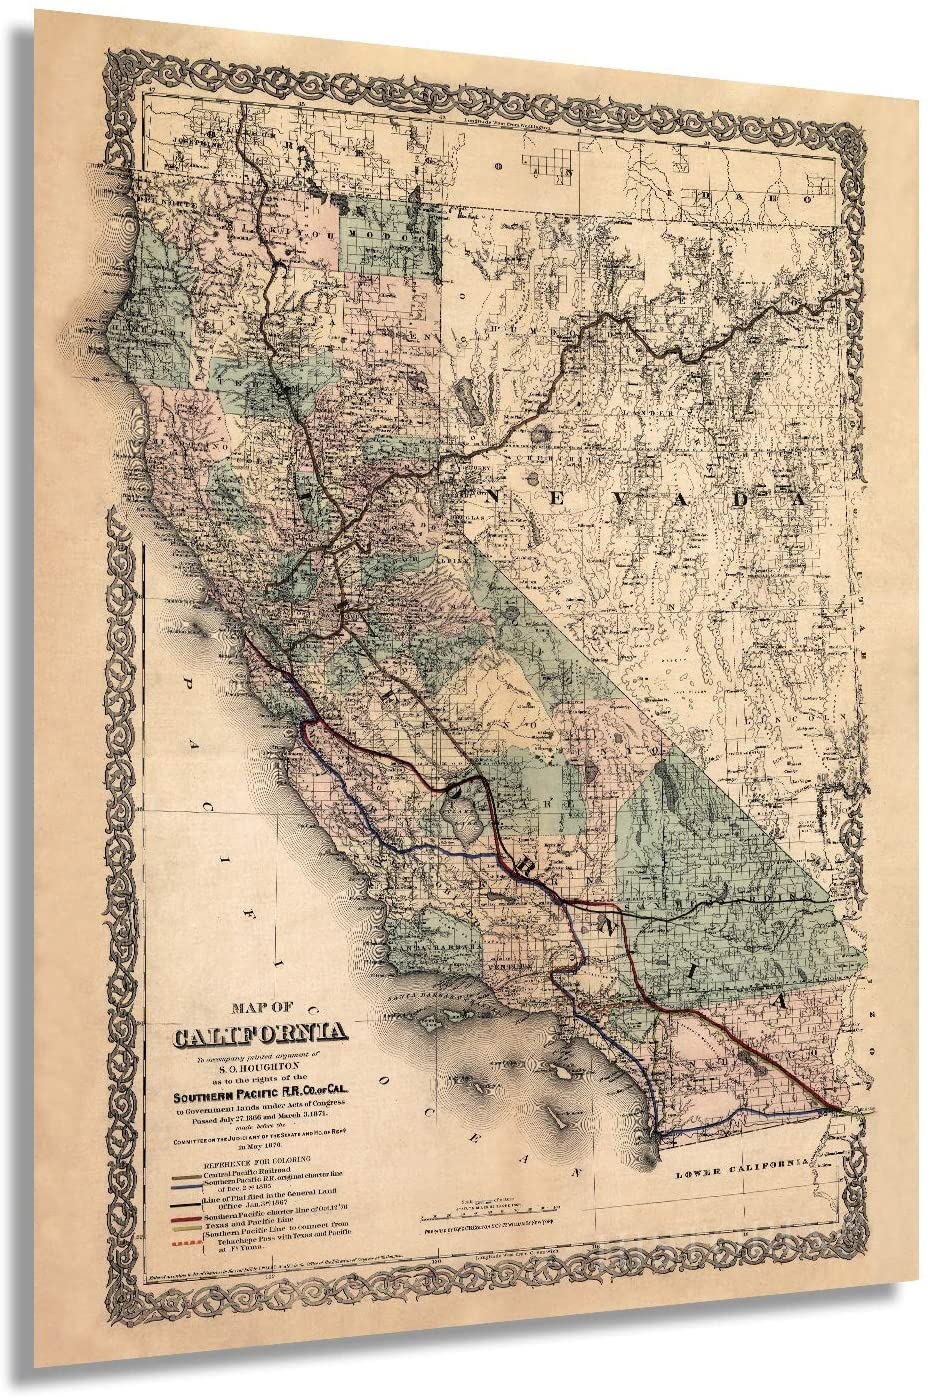 Historix Vintage 1876 Map of California - Restored Vintage Map of California Poster - Southern Pacific Railroad Railway - Old Map of California and Nevada - California Wall Map